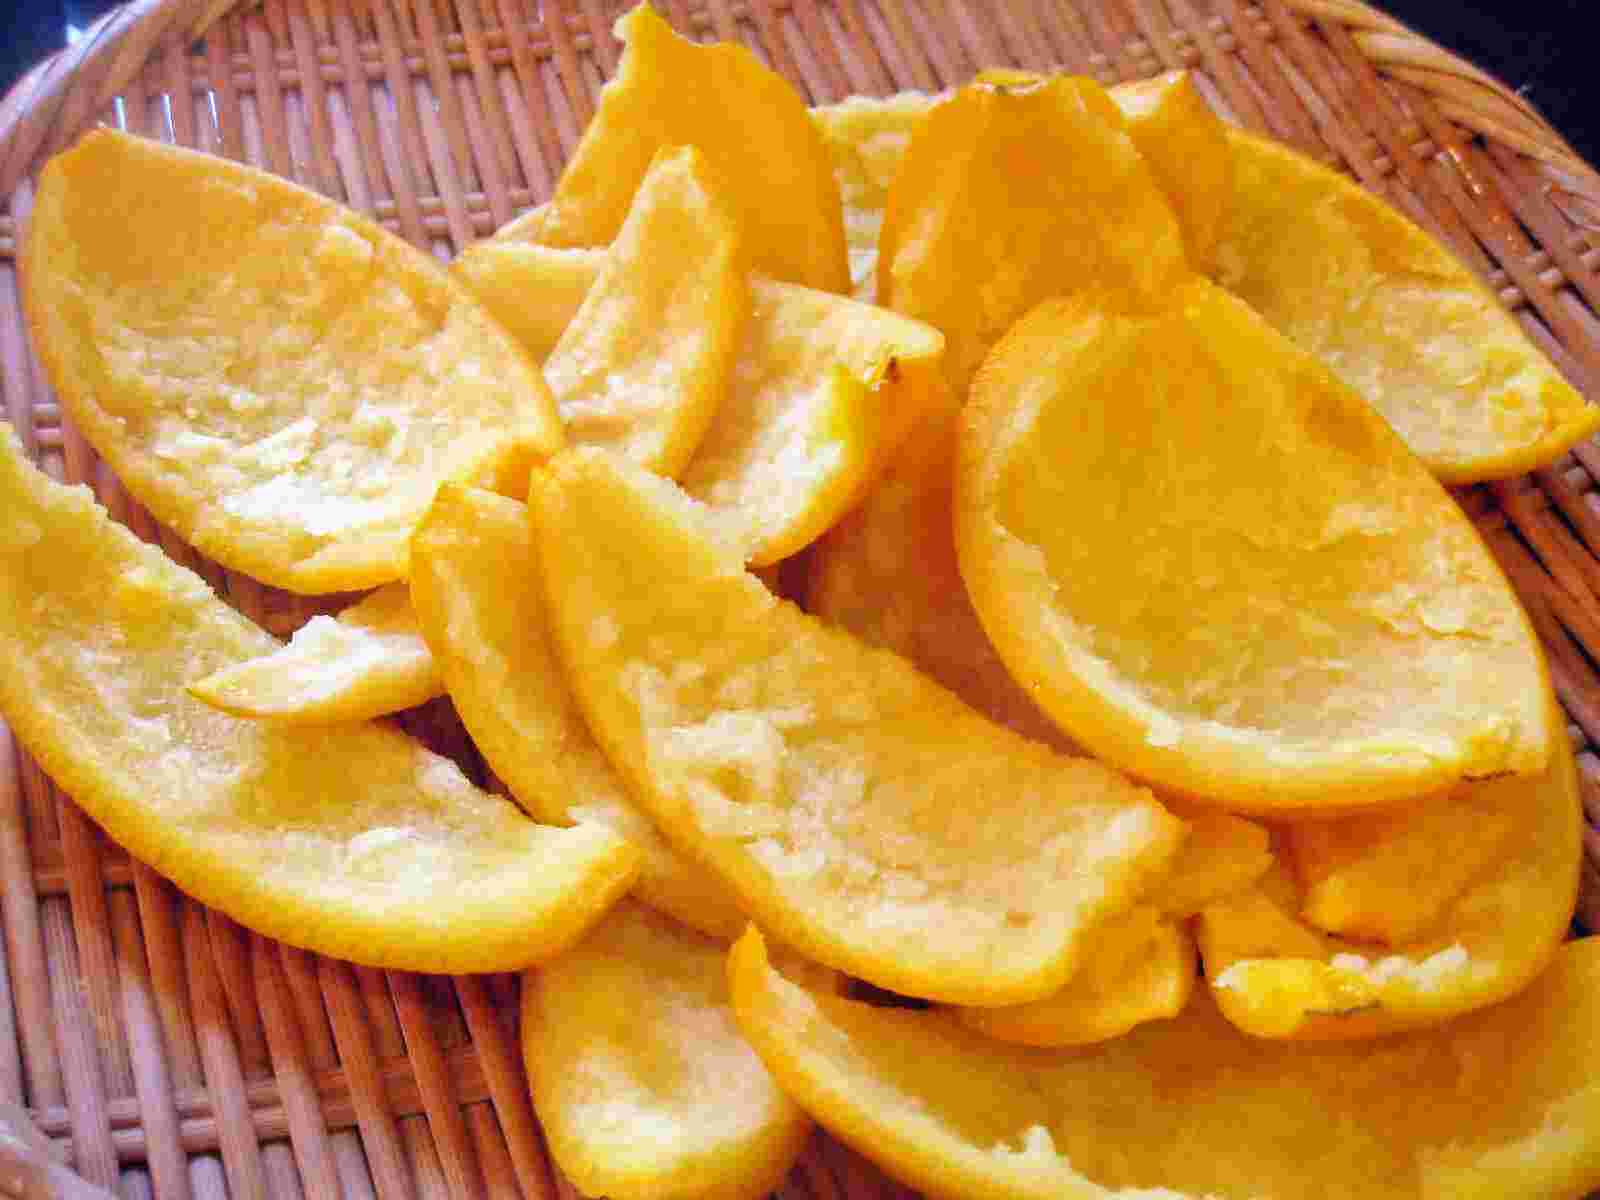 Recipes for Tom: Orenji piiru / candied orange peel